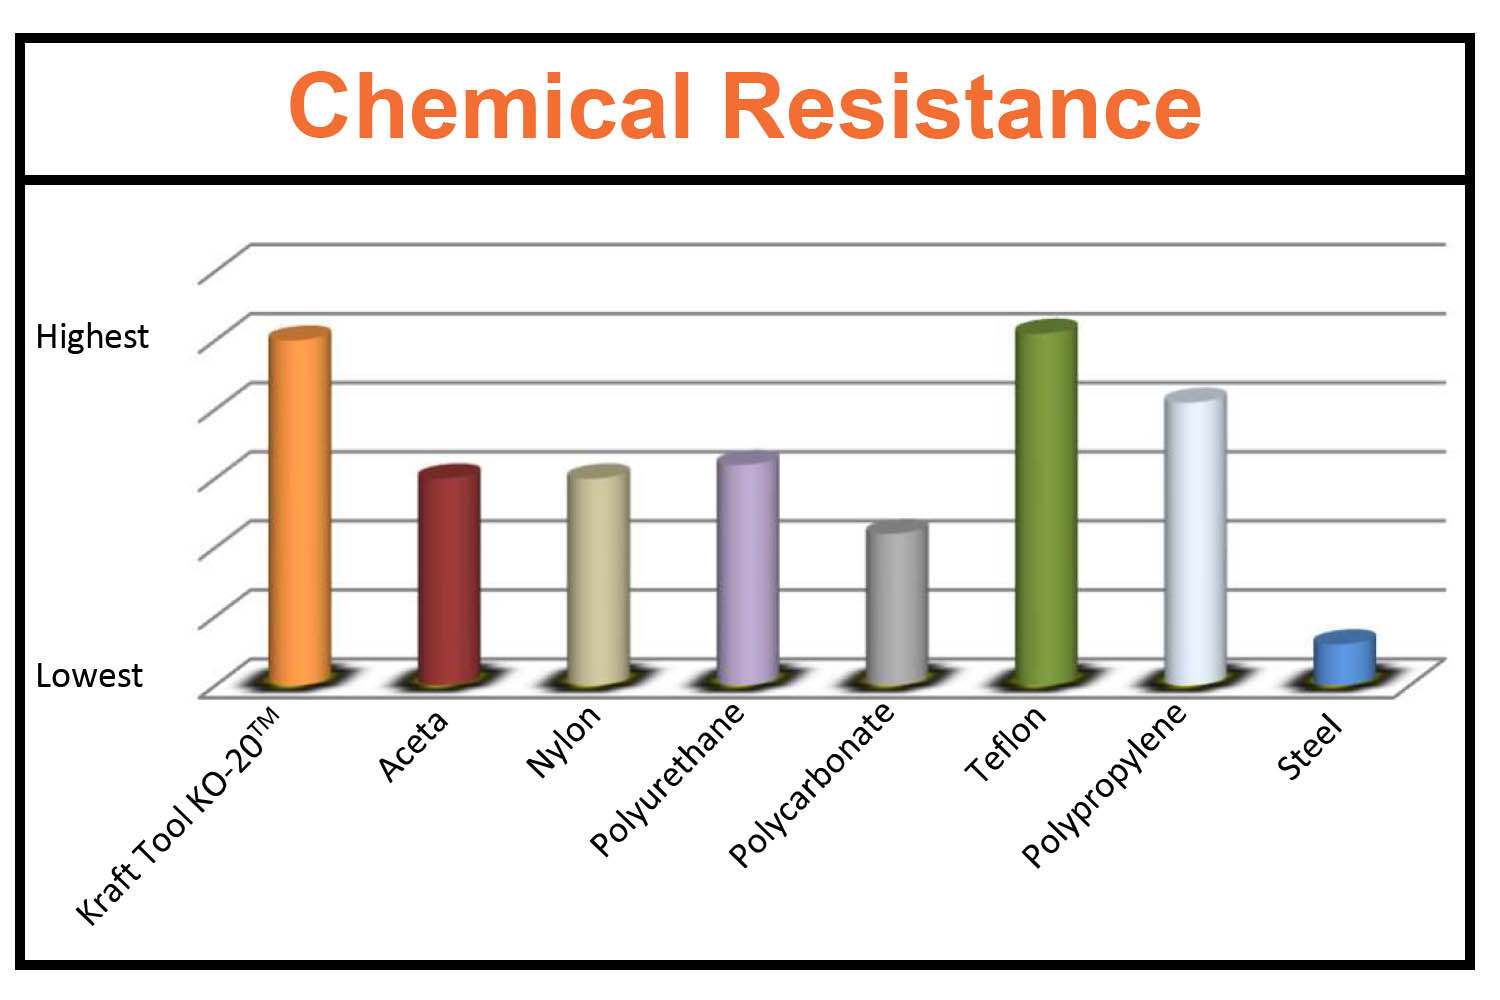 is resistant to many chemicals